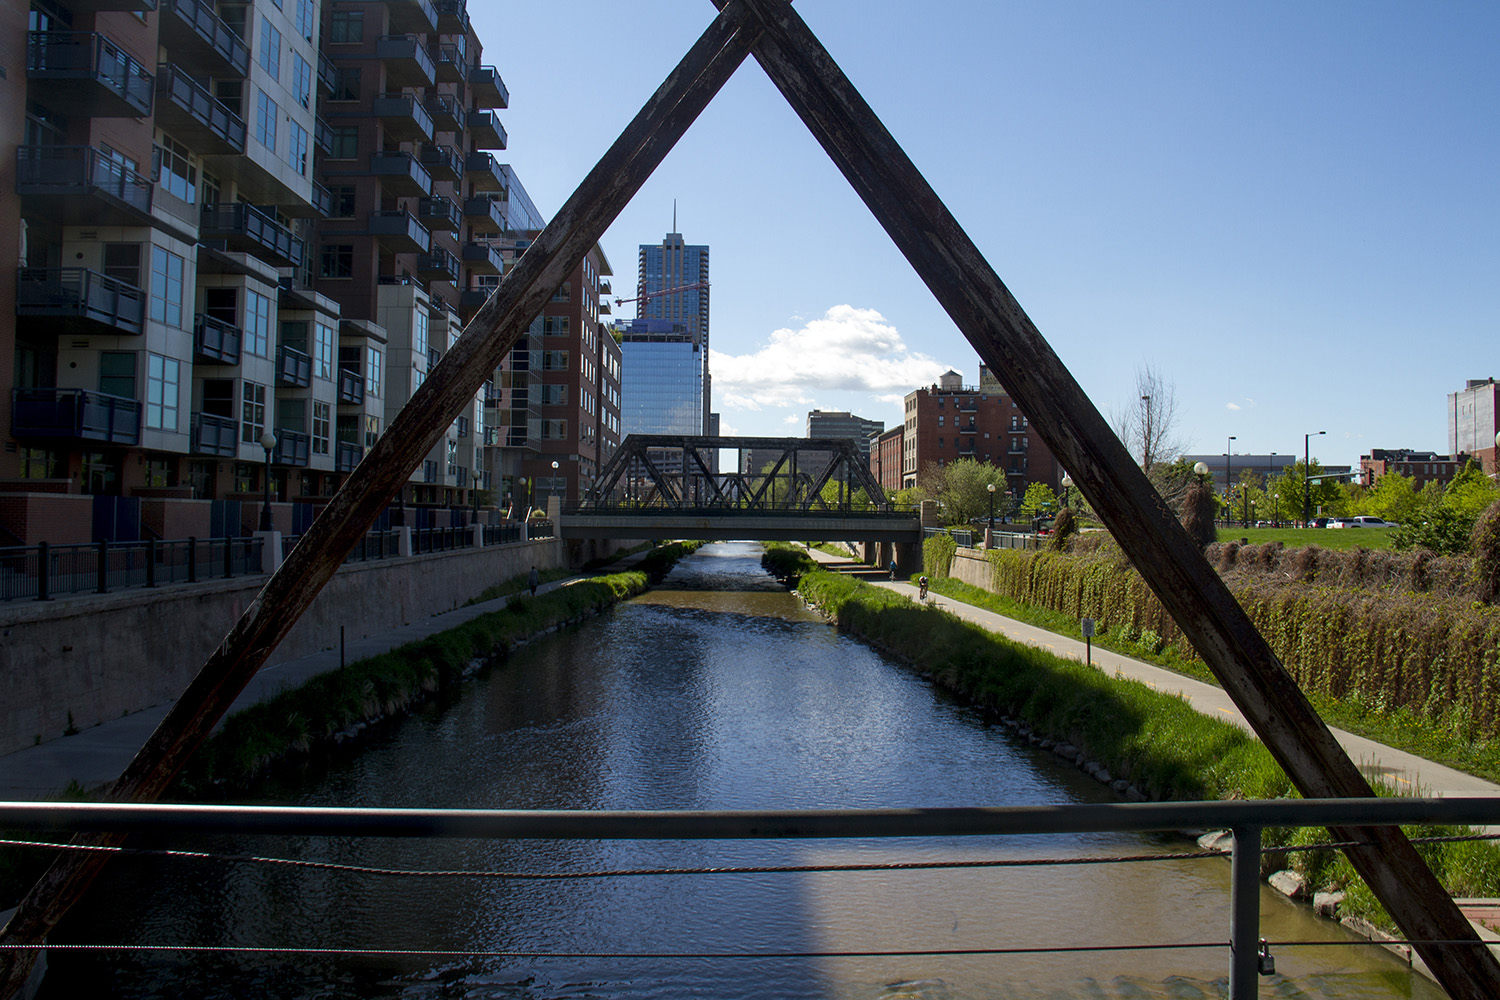 Views of the Cherry Creek trail in downtown Denver.  denver; denverite; colorado; cherry creek; trail; bridge; water; recreation; downtown; kevinjbeaty